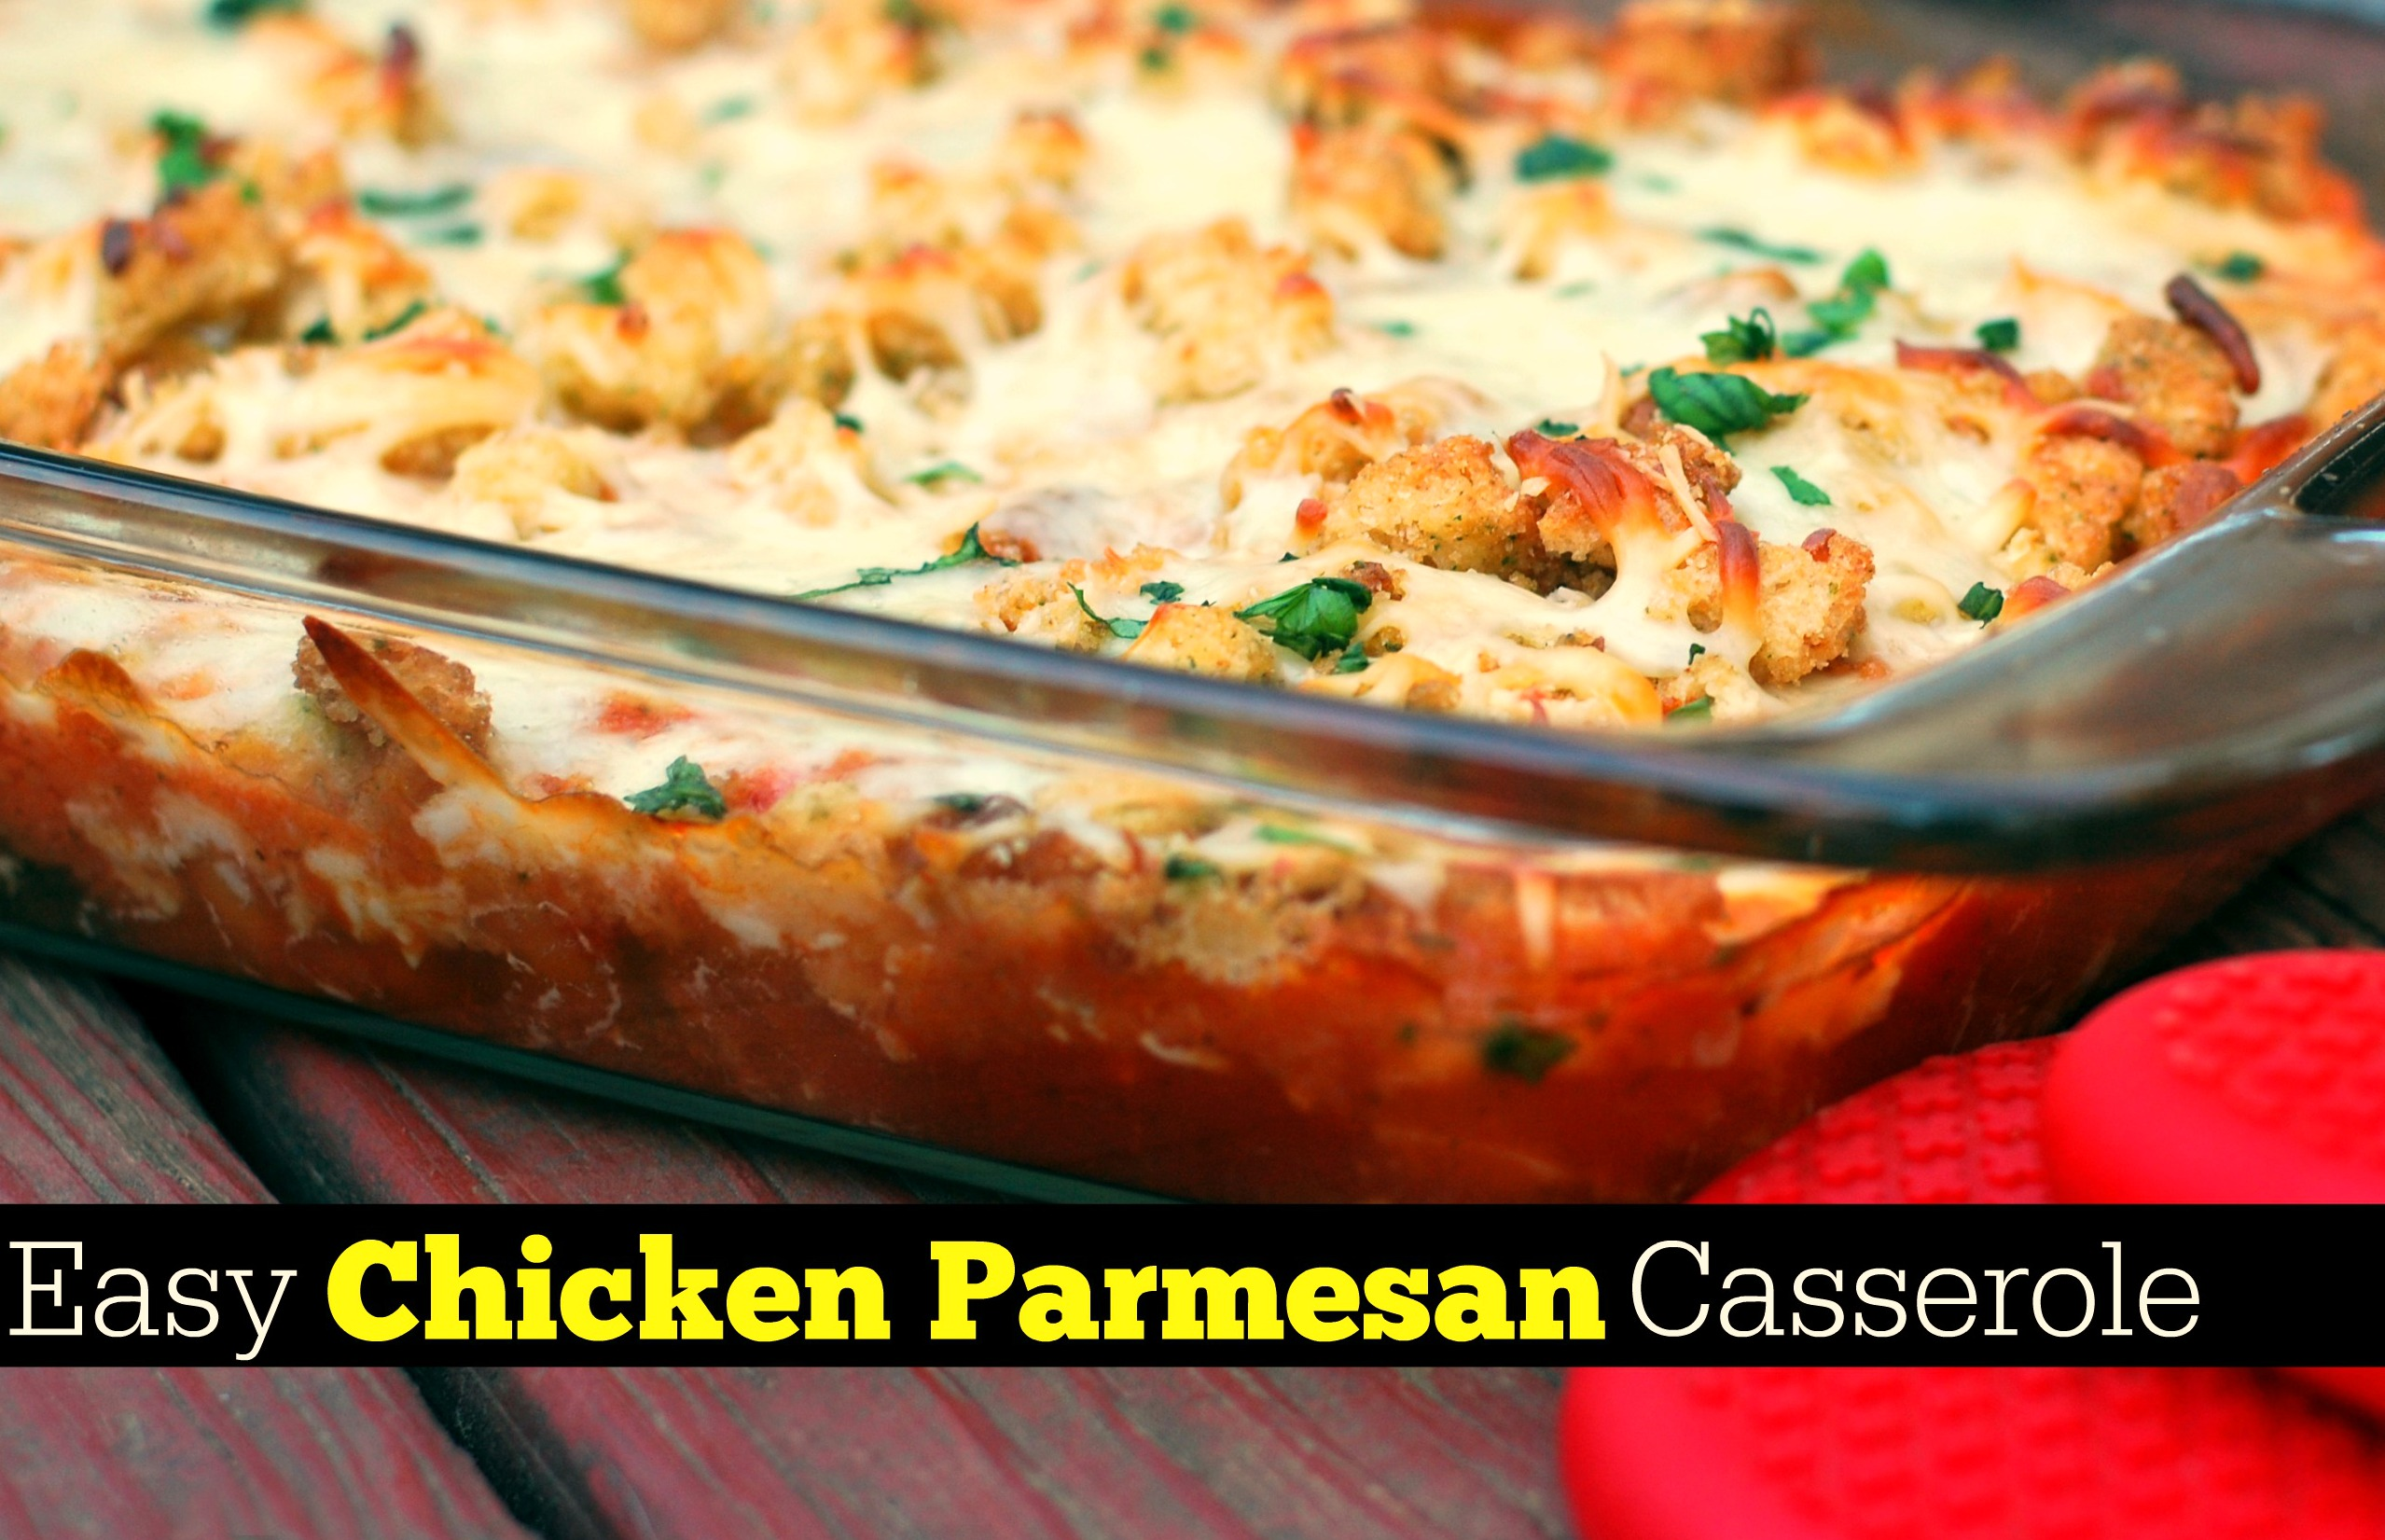 Quick Easy Chicken Casserole Recipes 4, Recipes. Would you like any vegetables in the recipe? Vegetables Without Vegetables No Preference. Skip. Last updated Dec 01, 4, suggested recipes. Skinny Chicken & Broccoli Casserole Yummy Healthy Easy.